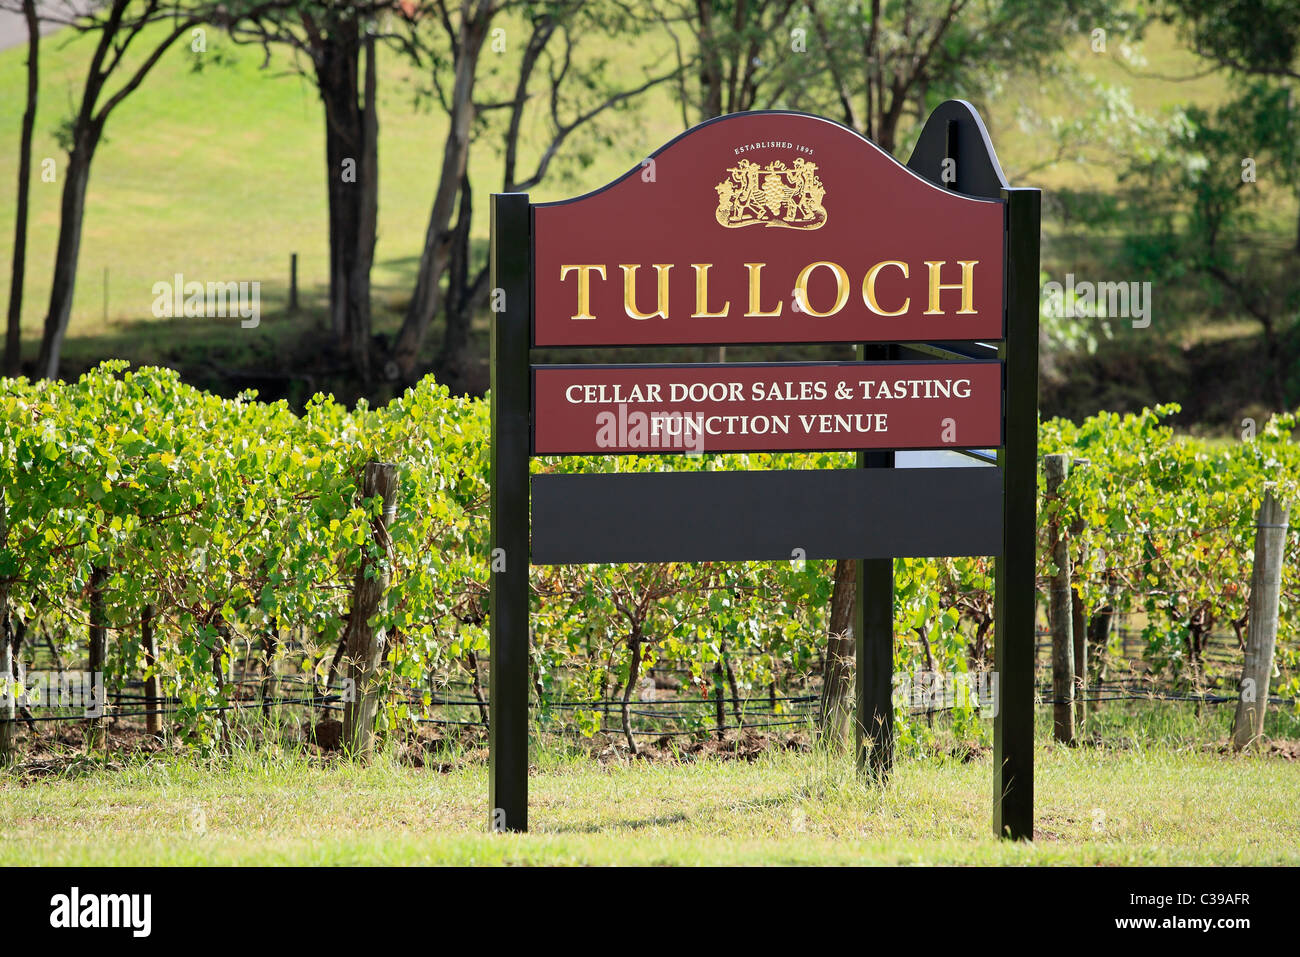 sign-at-tulloch-wines-pokolbin-hunter-valley-new-south-wales-australia-C39AFR.jpg